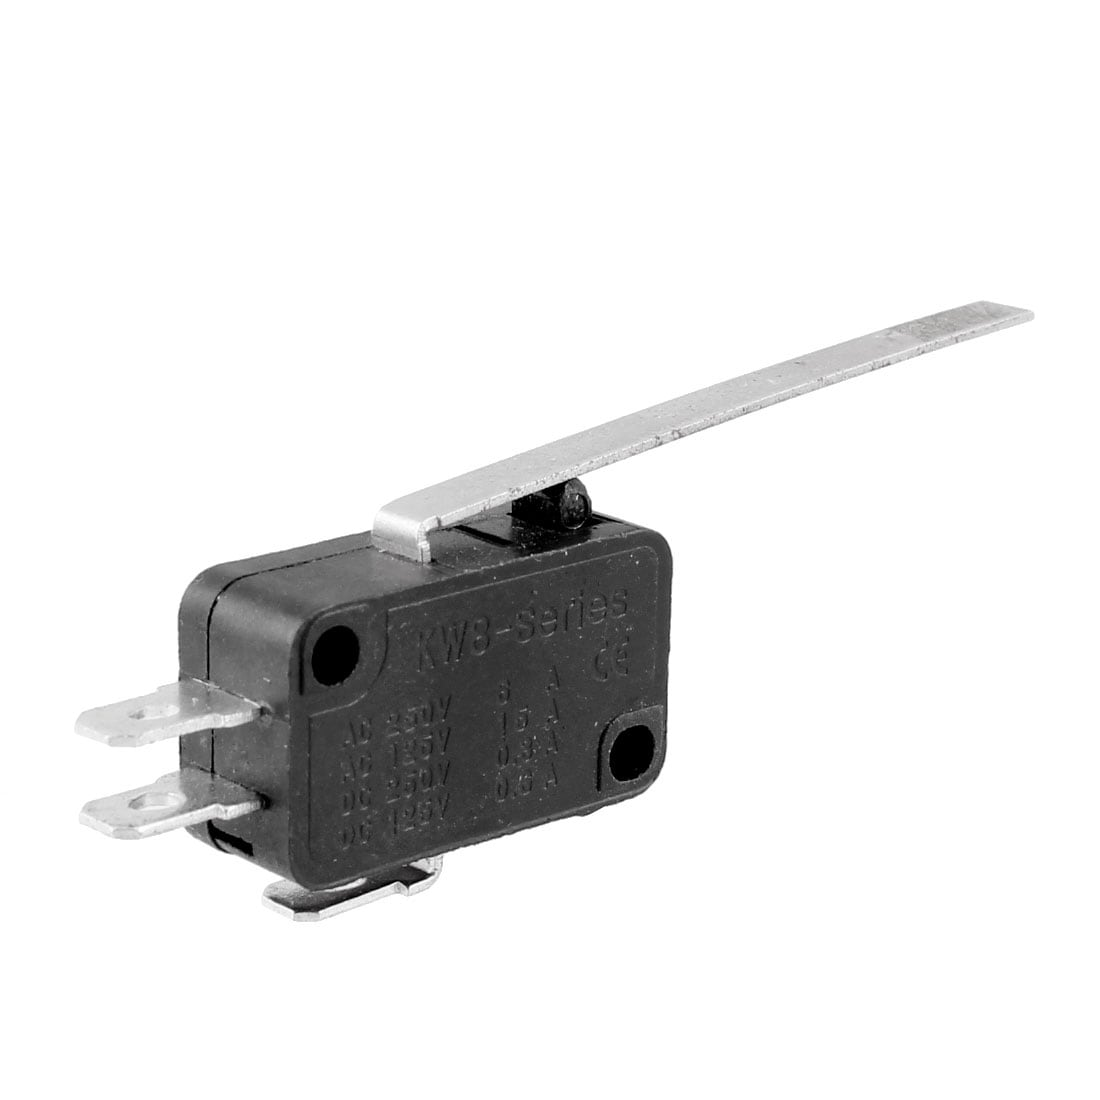 Shop Long Hinge Roller Lever Pushbutton 1no 1nc 1p2t Eelectric Micro Switch With Black On Sale Free Shipping Orders Over 45 18253000